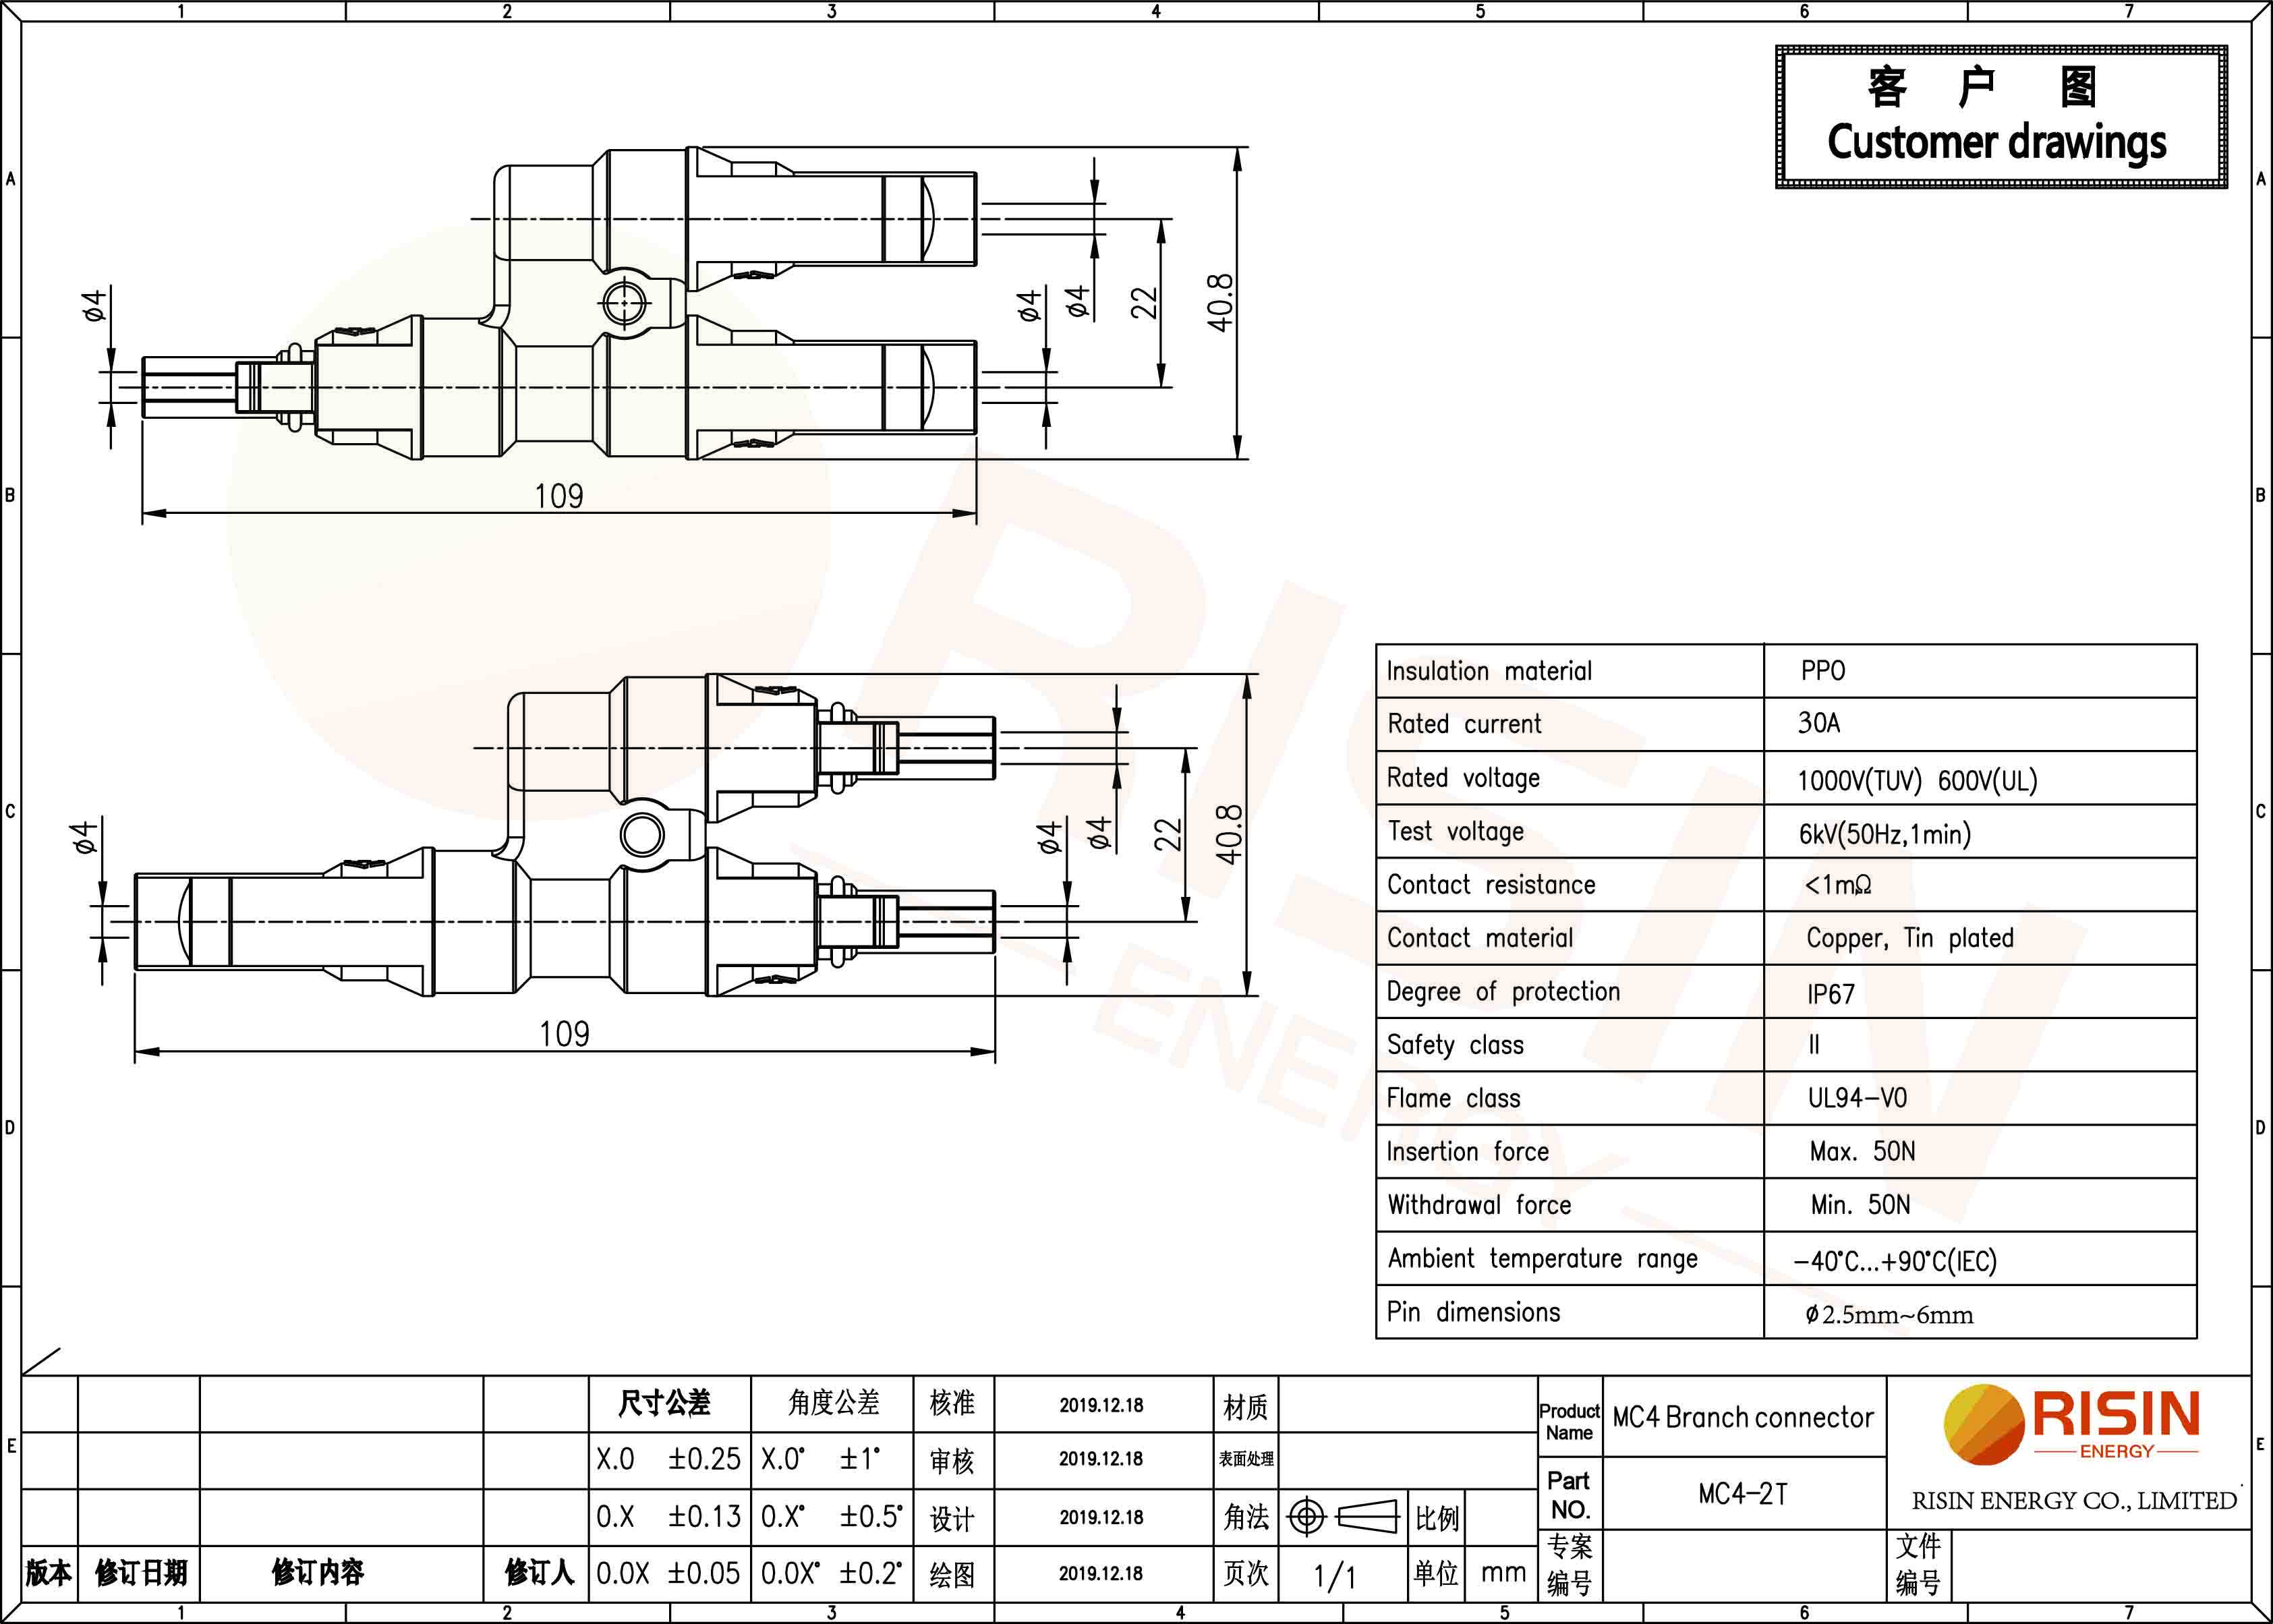 Datasheet of MC4 2T branch connector